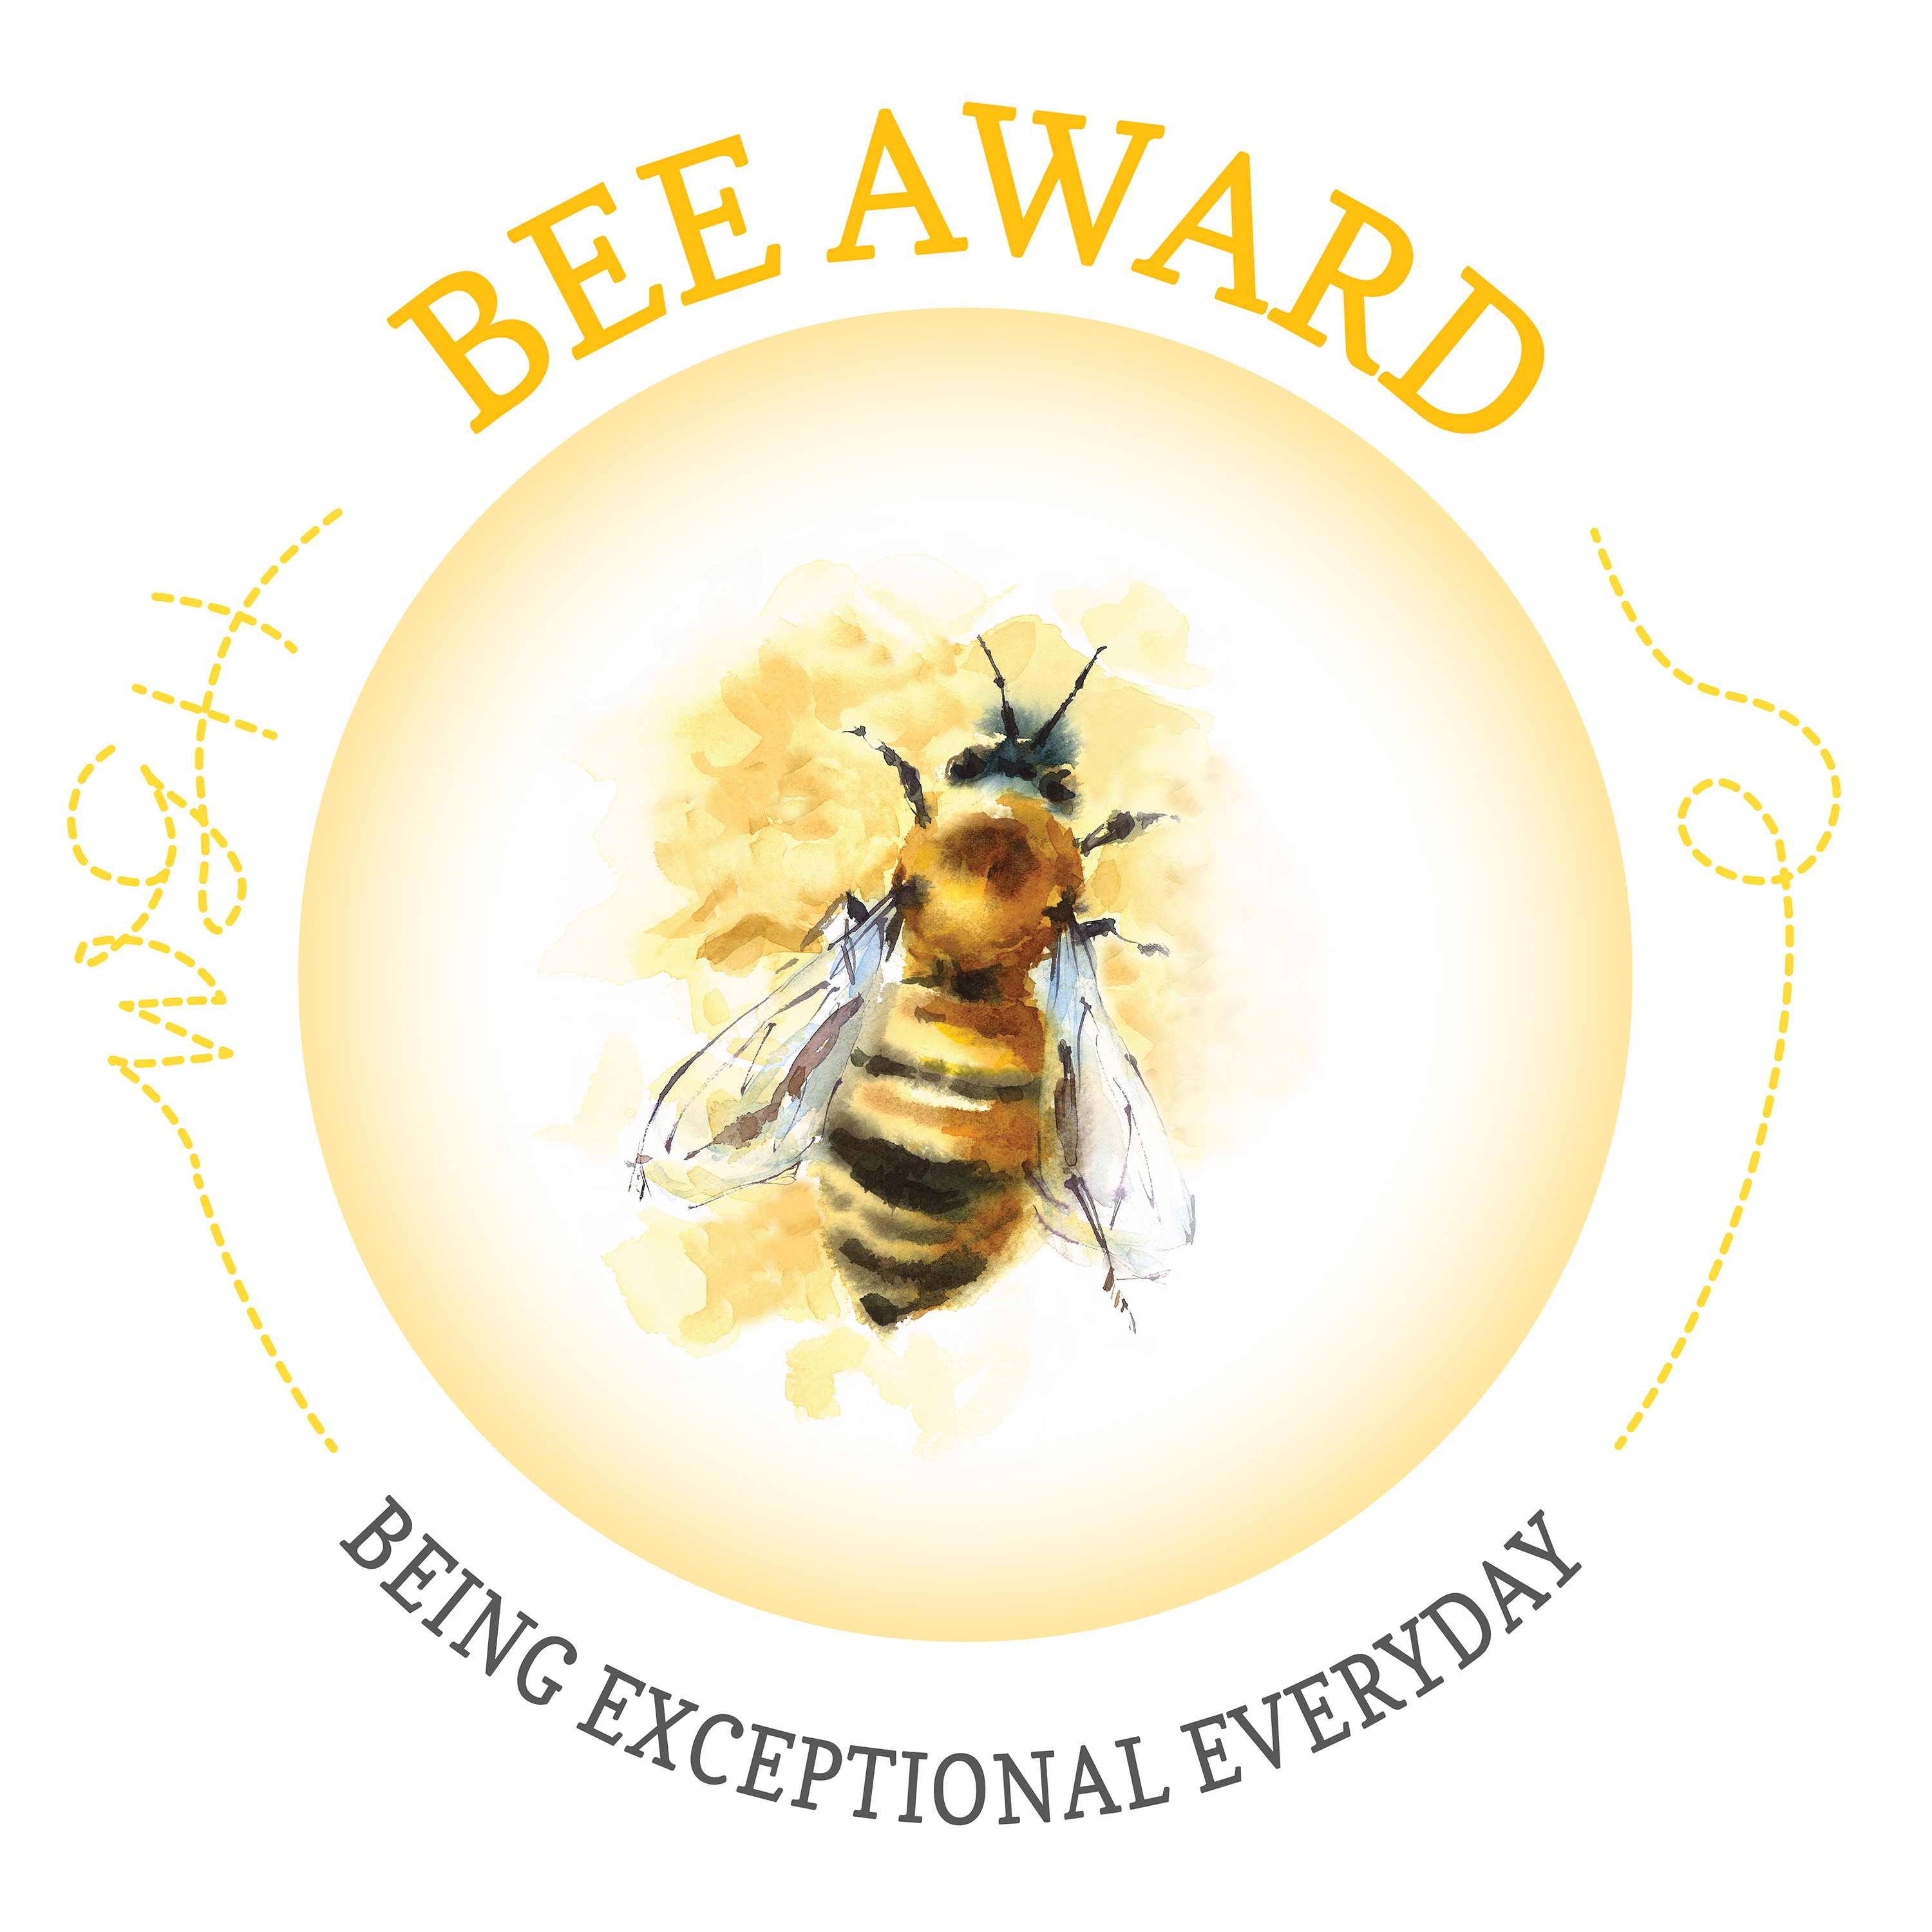 The Being Exceptional Every day (Bee) Award